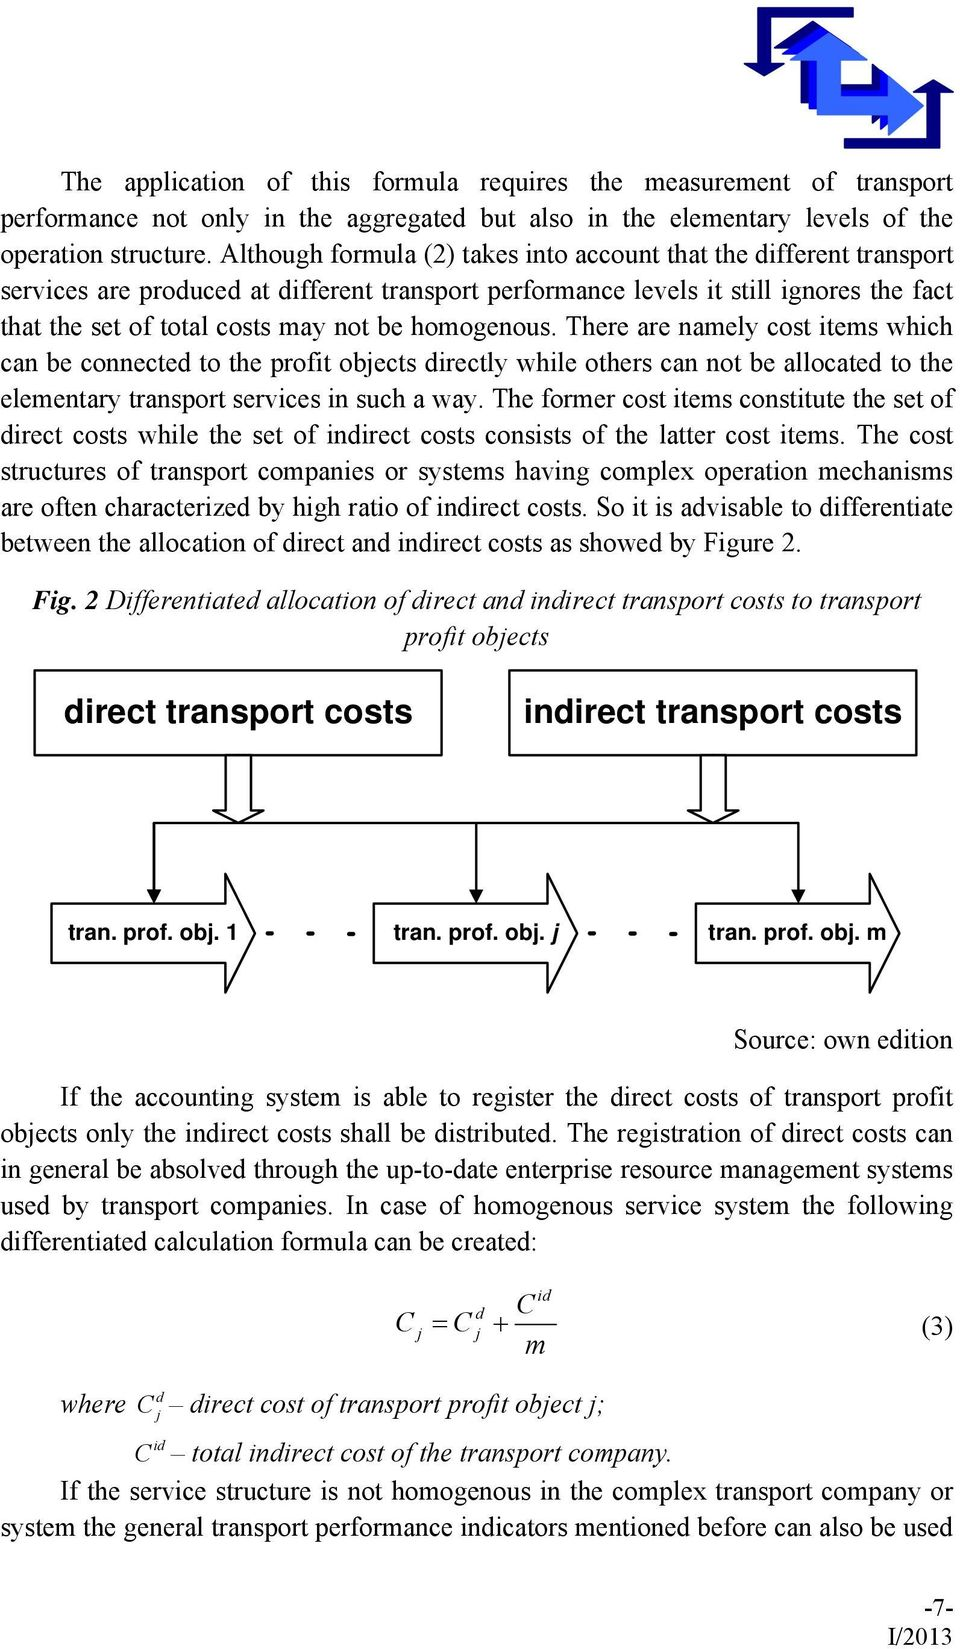 homogenous. There are namely cost items which can be connected to the rofit obects directly while others can not be allocated to the elementary transort services in such a way.